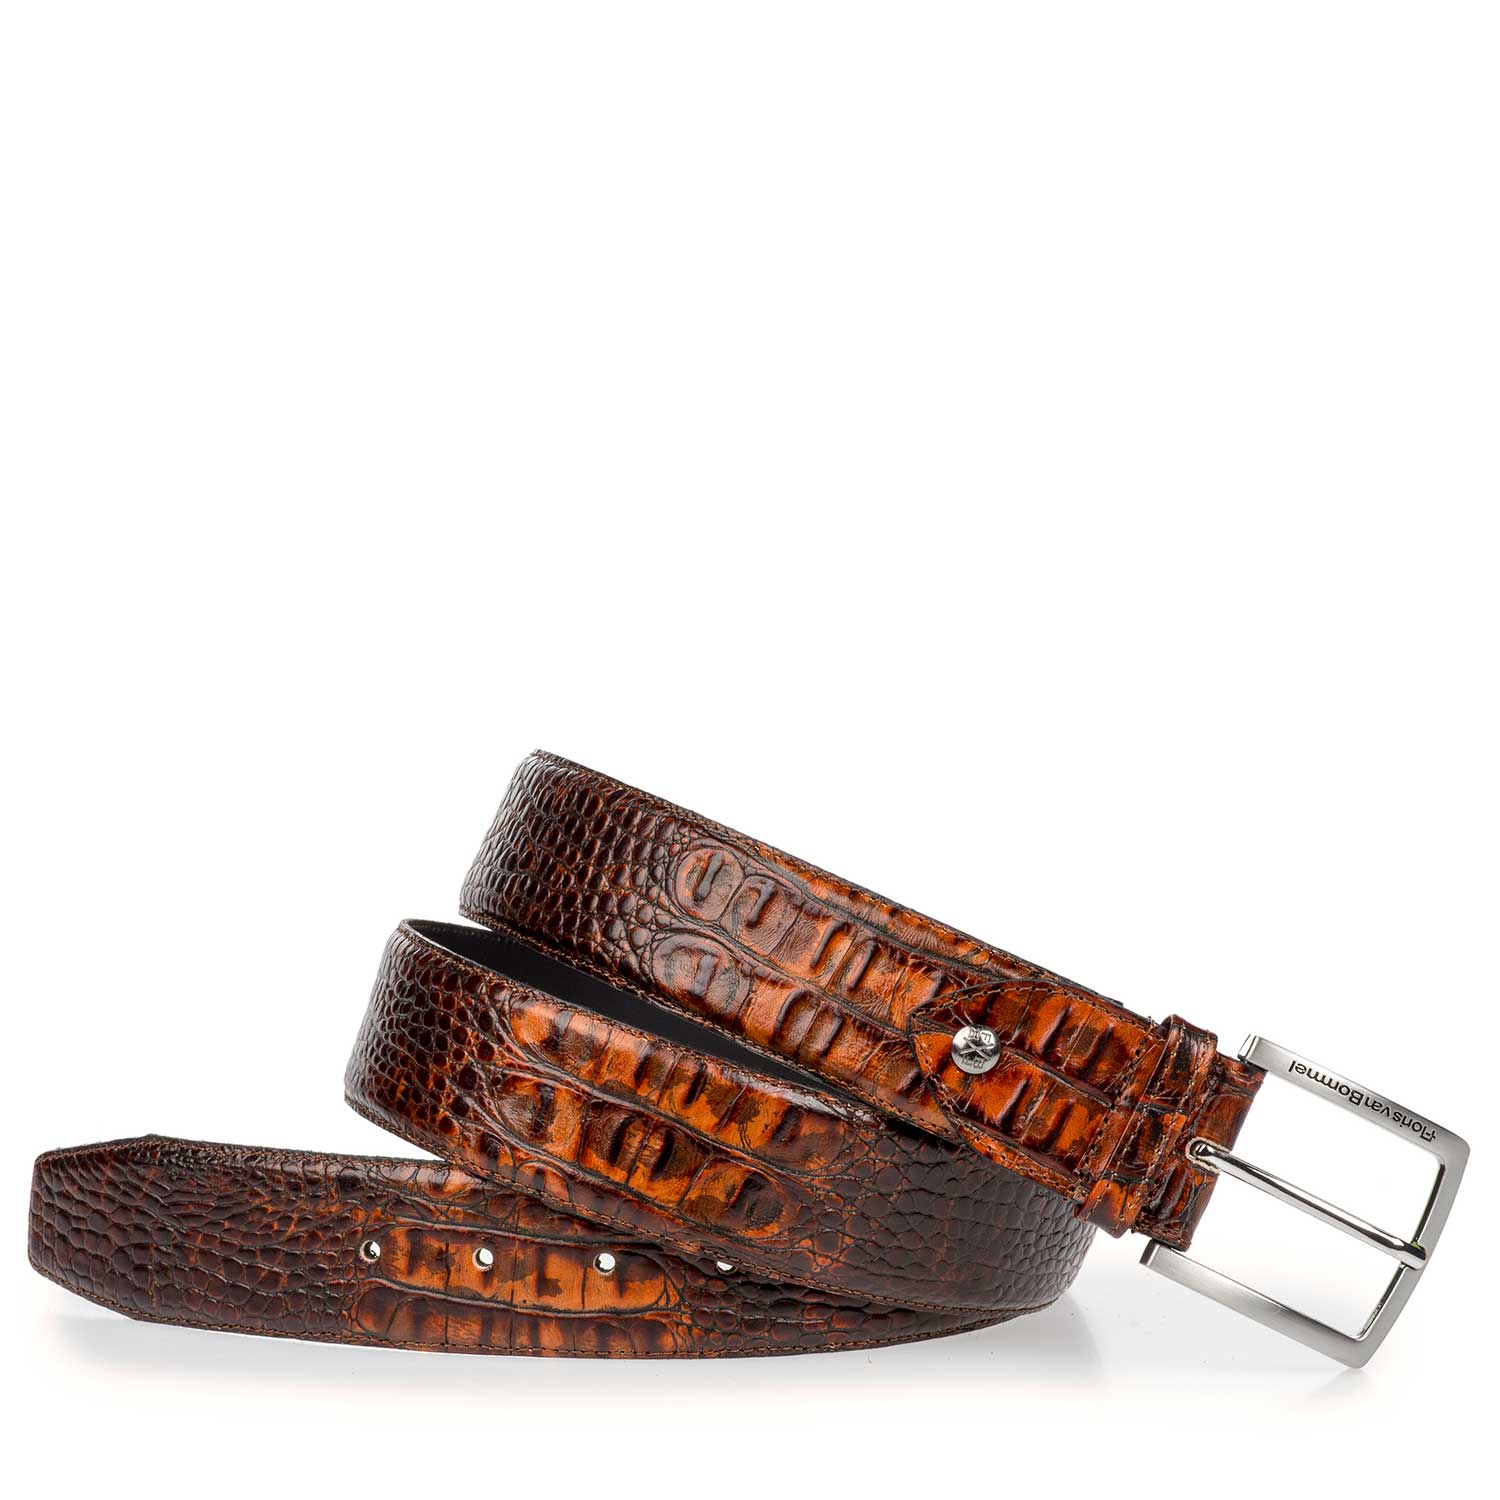 75189/25 - Brown leather belt with croco print